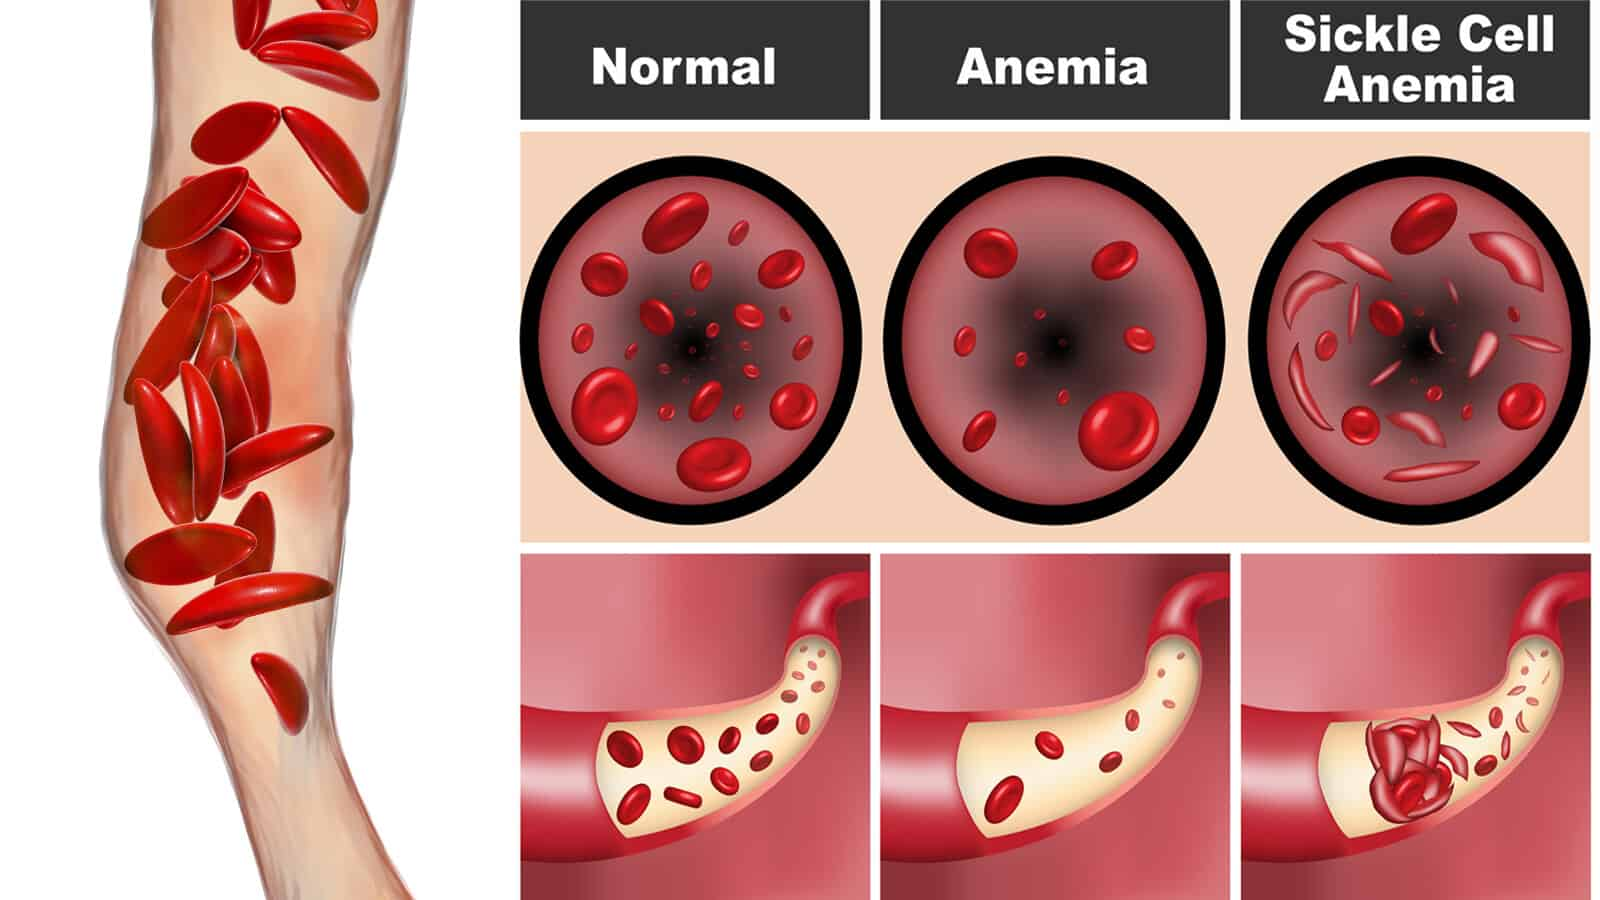 Doctors Explain the Causes and Signs of Sickle Cell Anemia 1600x900